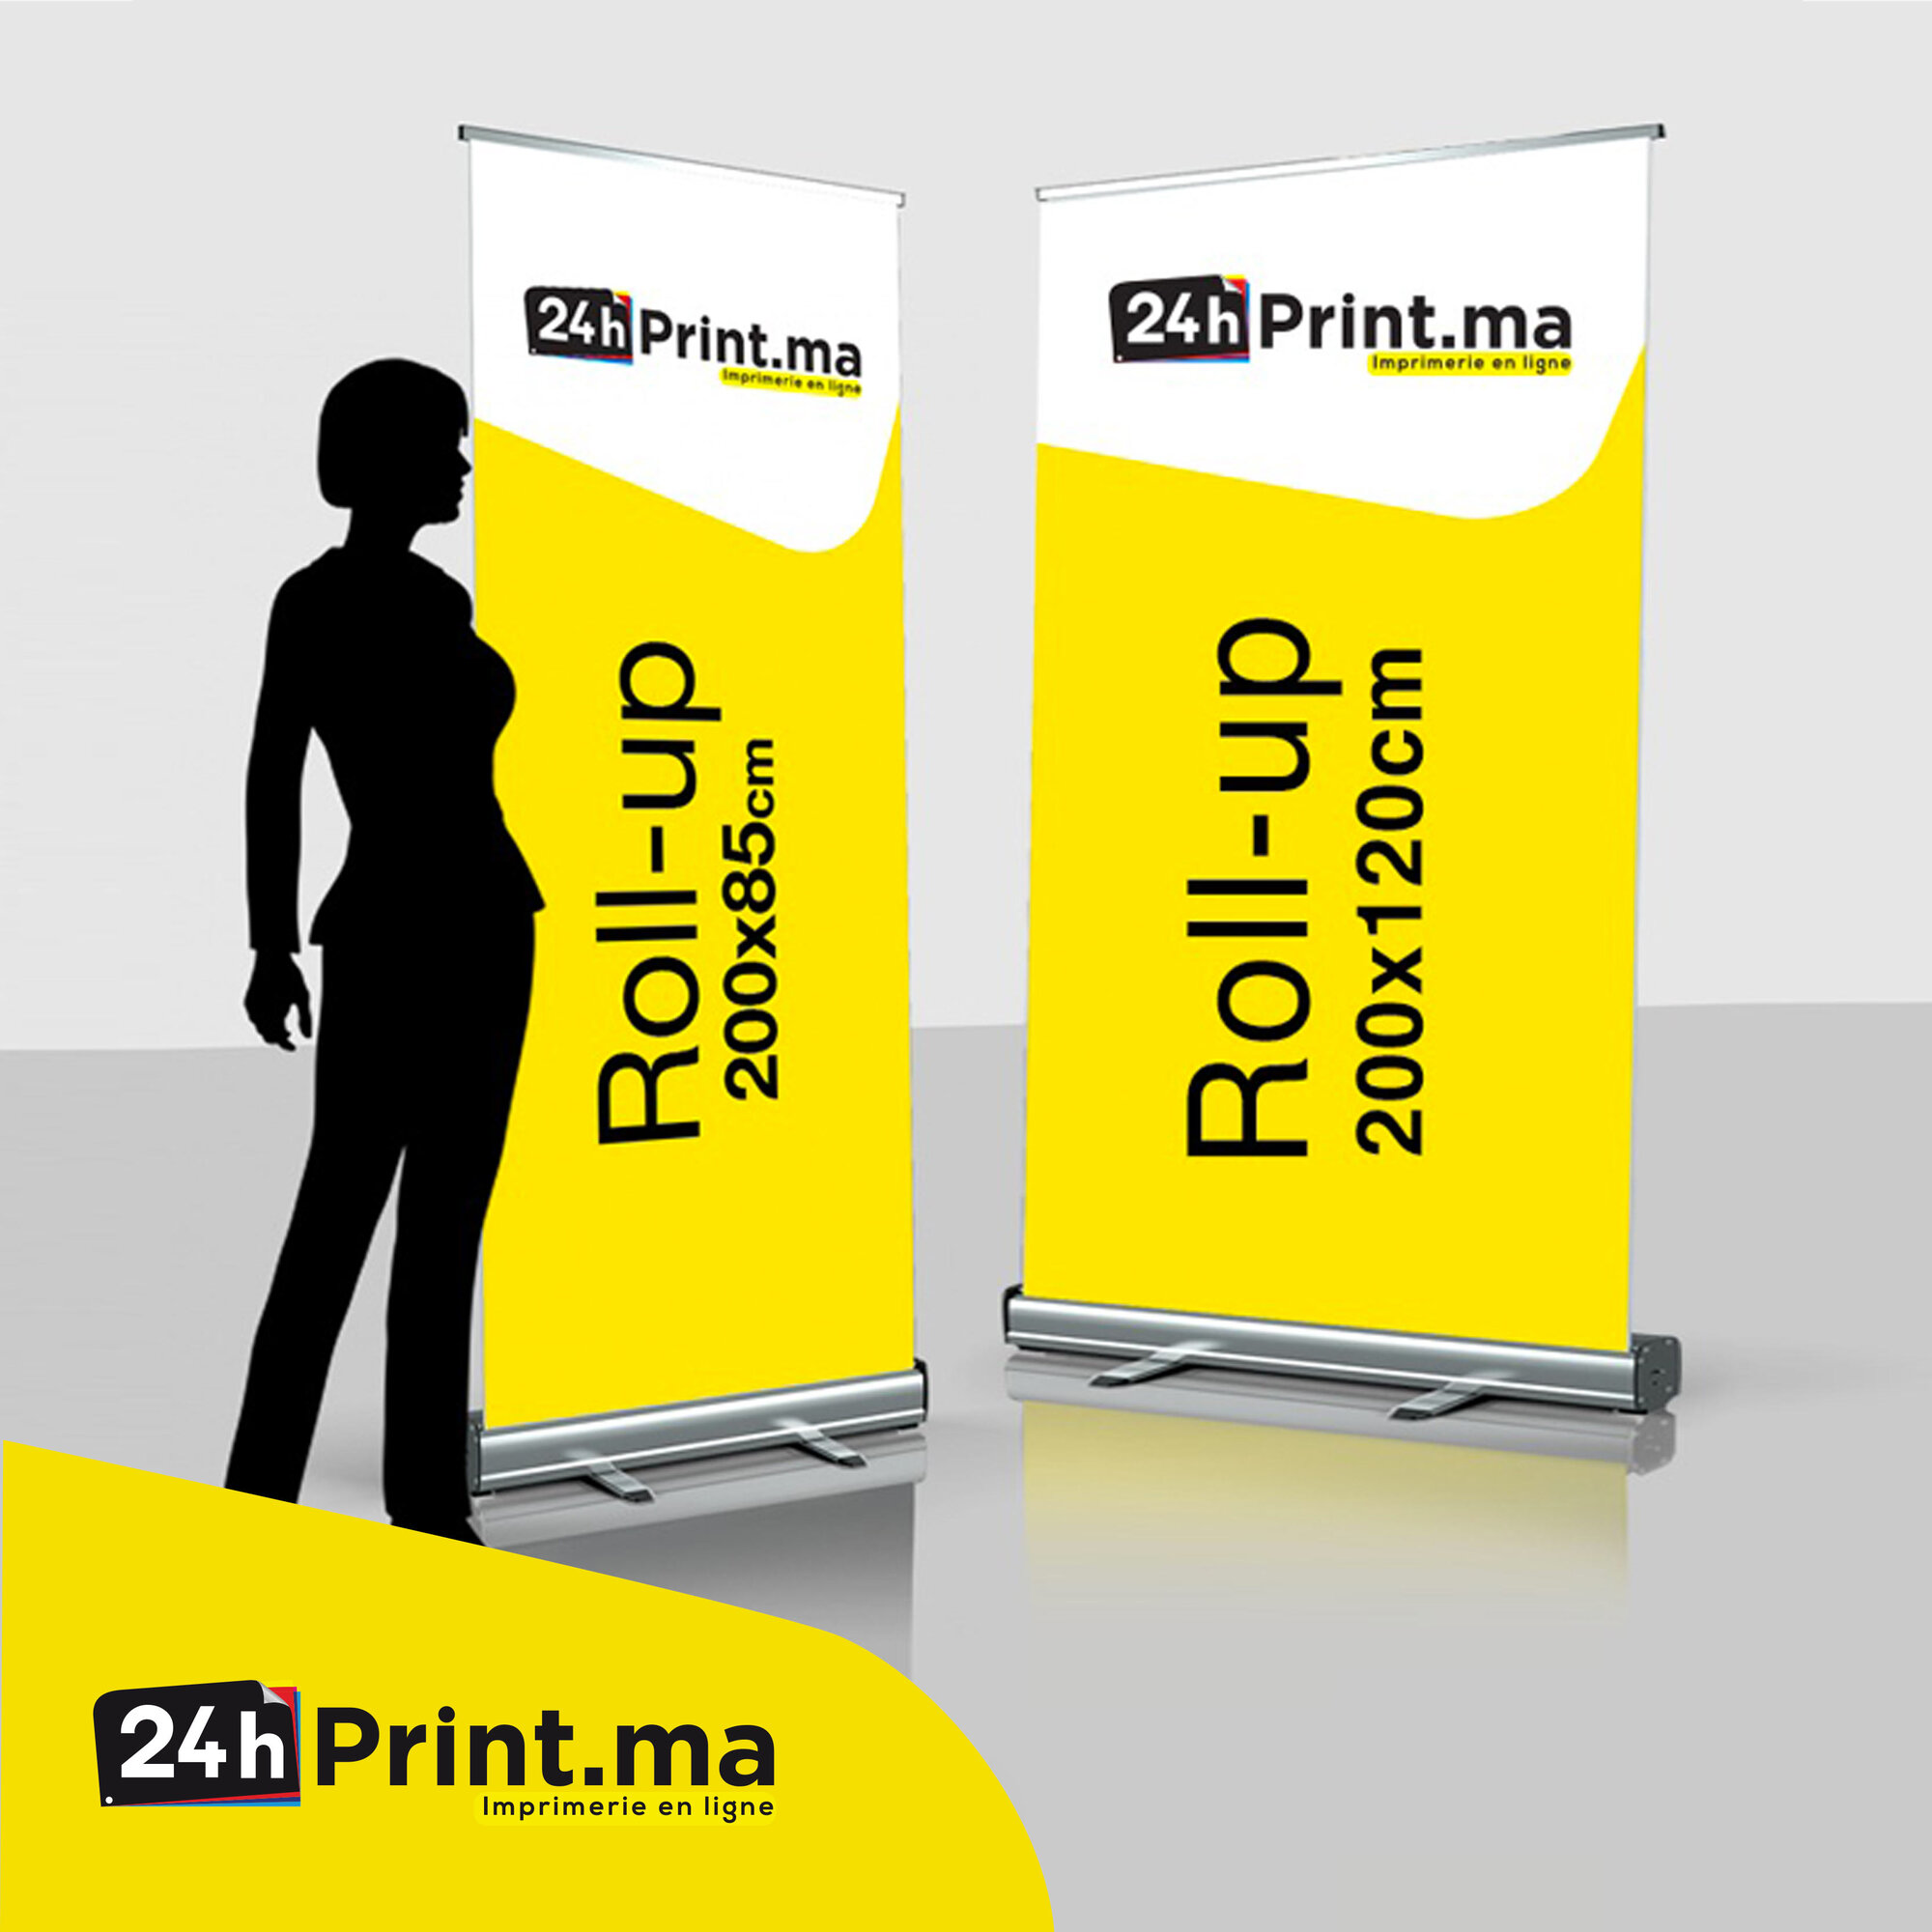 https://www.24hprint.ma/images/products_gallery_images/tente59.jpg